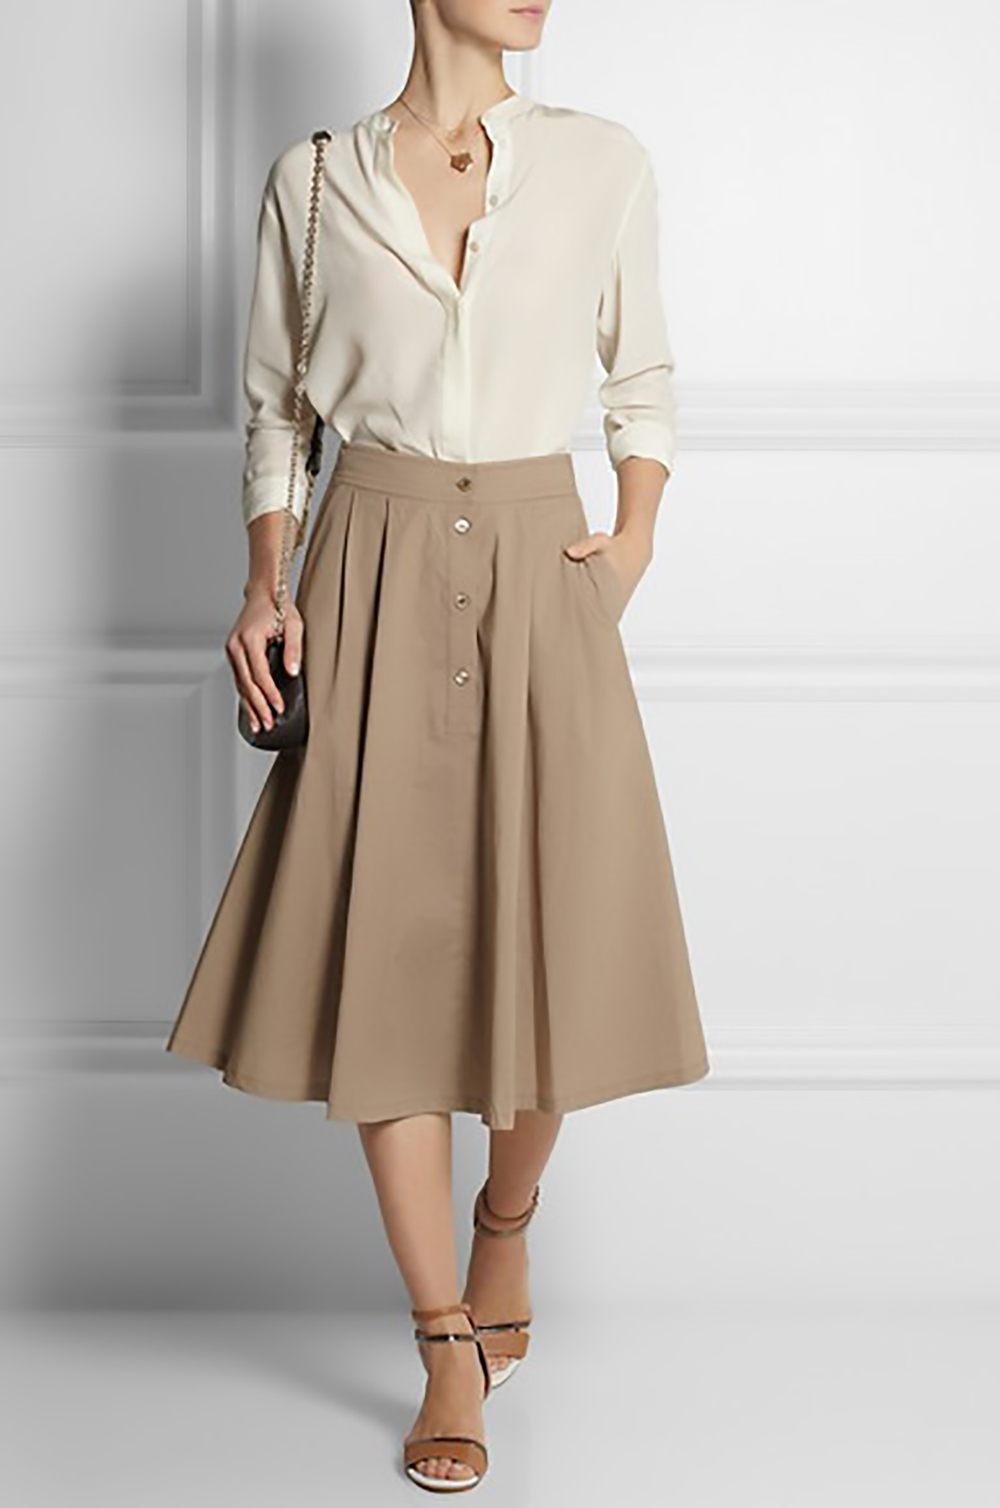 The Work Look — Midi skirts at work